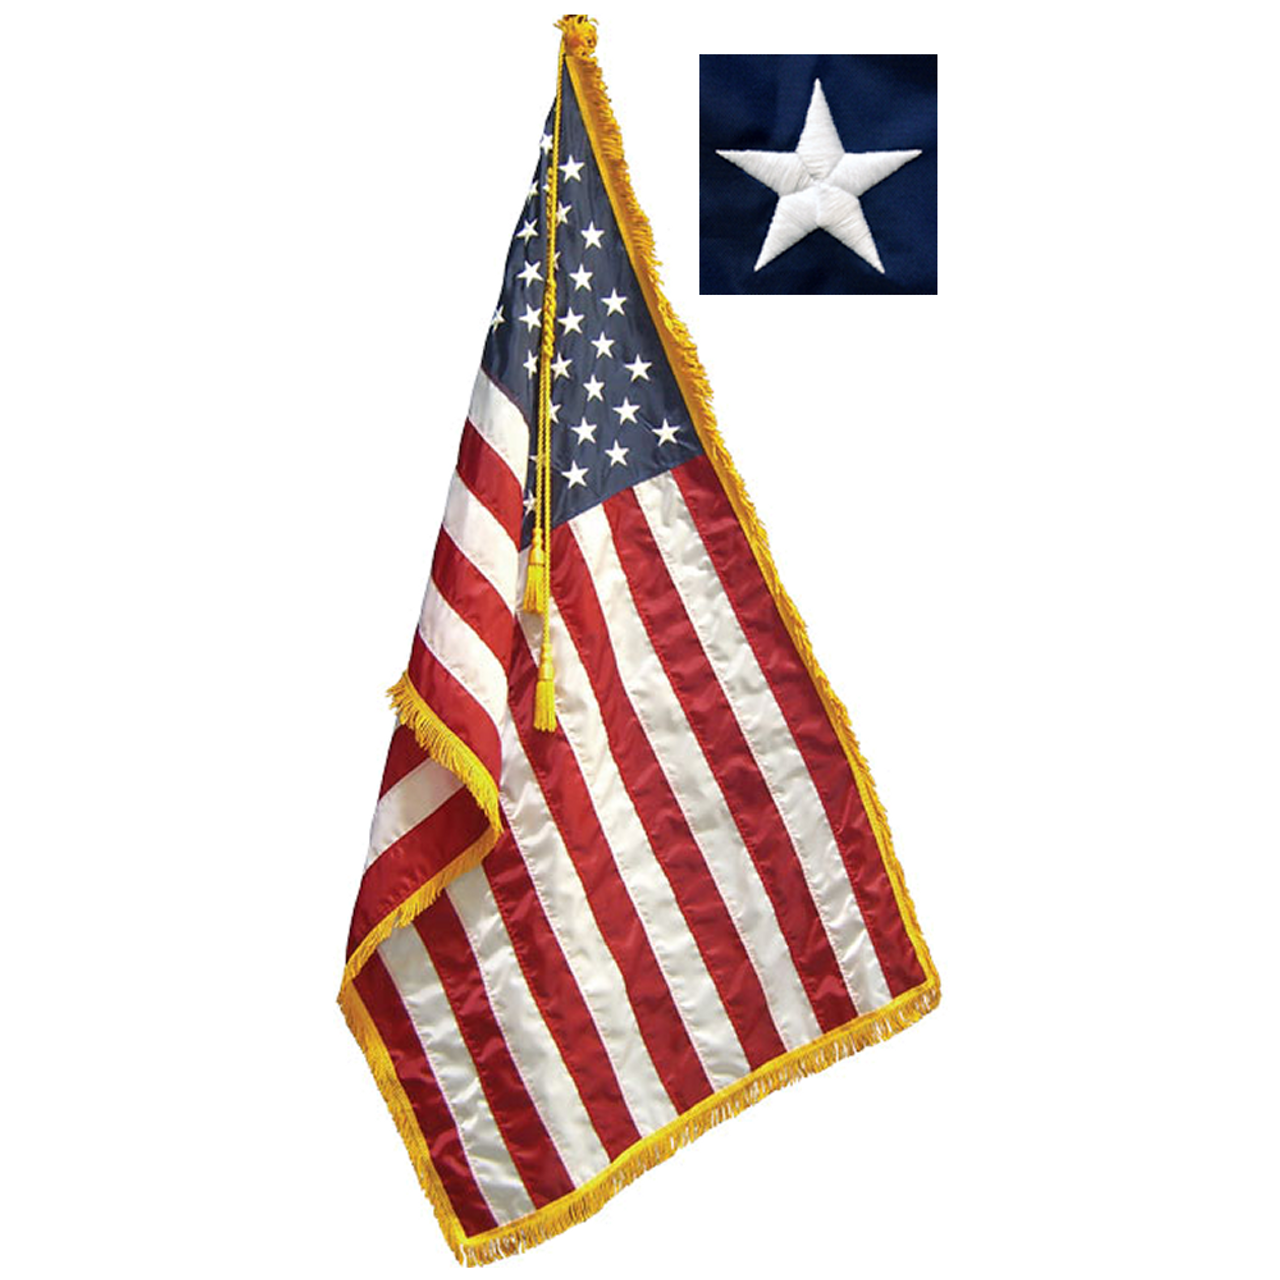 8' Freedom Indoor Flag Set with 3' x 5' Flag